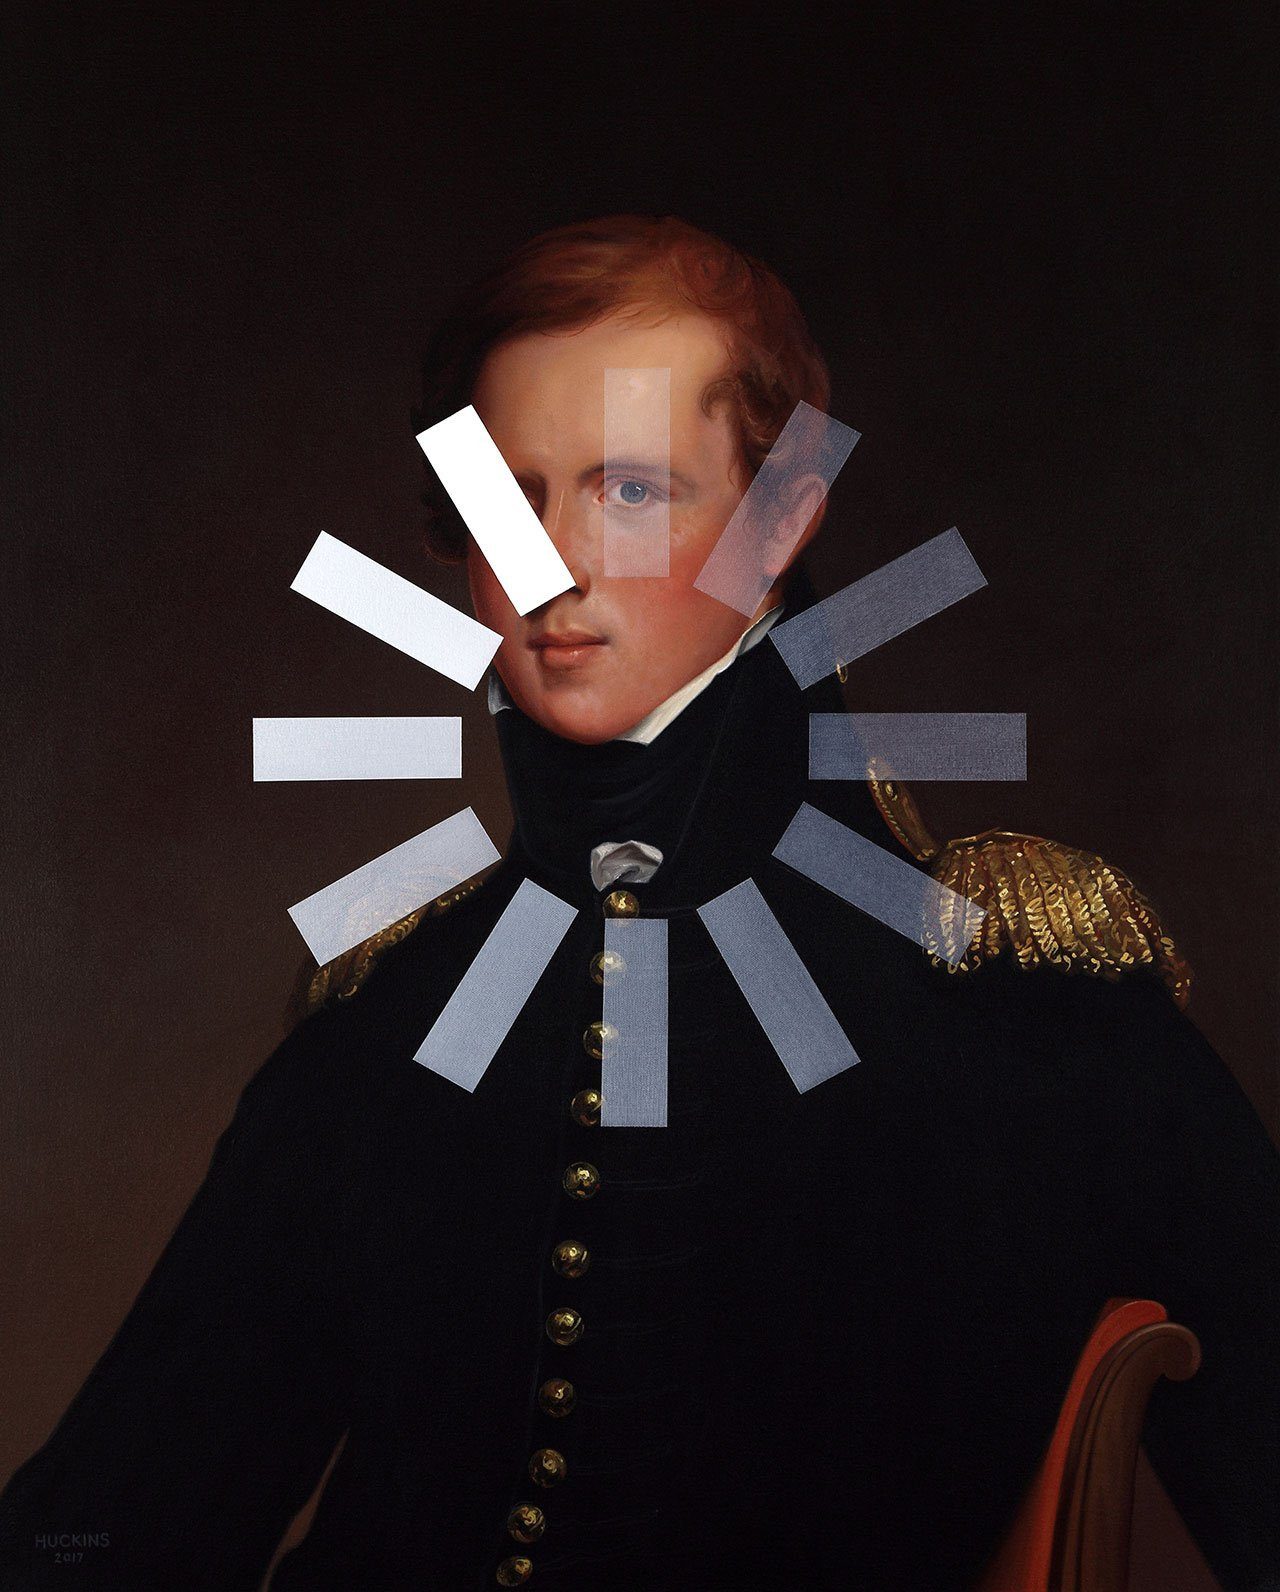 Shawn Huckins, Major John Biddle: Panic Two (Loading Spinner), 2017. Acrylic on canvas, 32 x 26 in (81 x 66 cm).